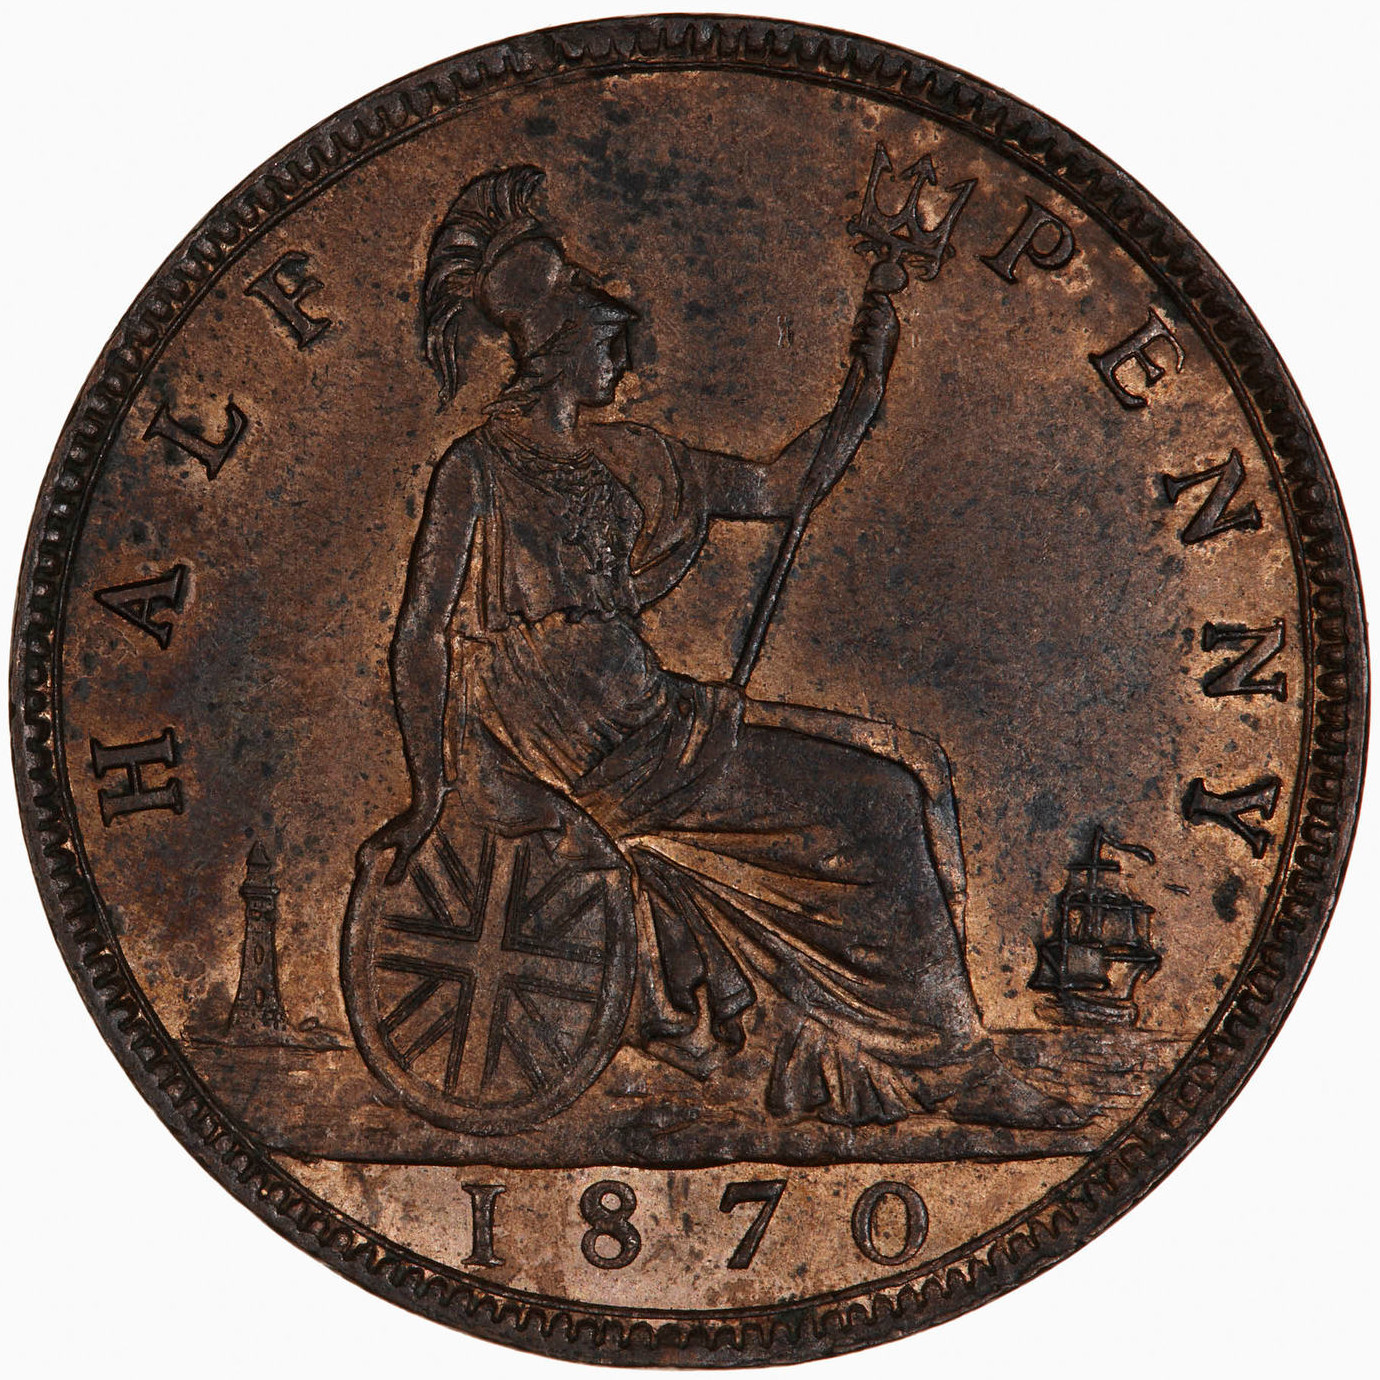 Halfpenny 1870: Photo Coin - Halfpenny, Queen Victoria, Great Britain, 1870